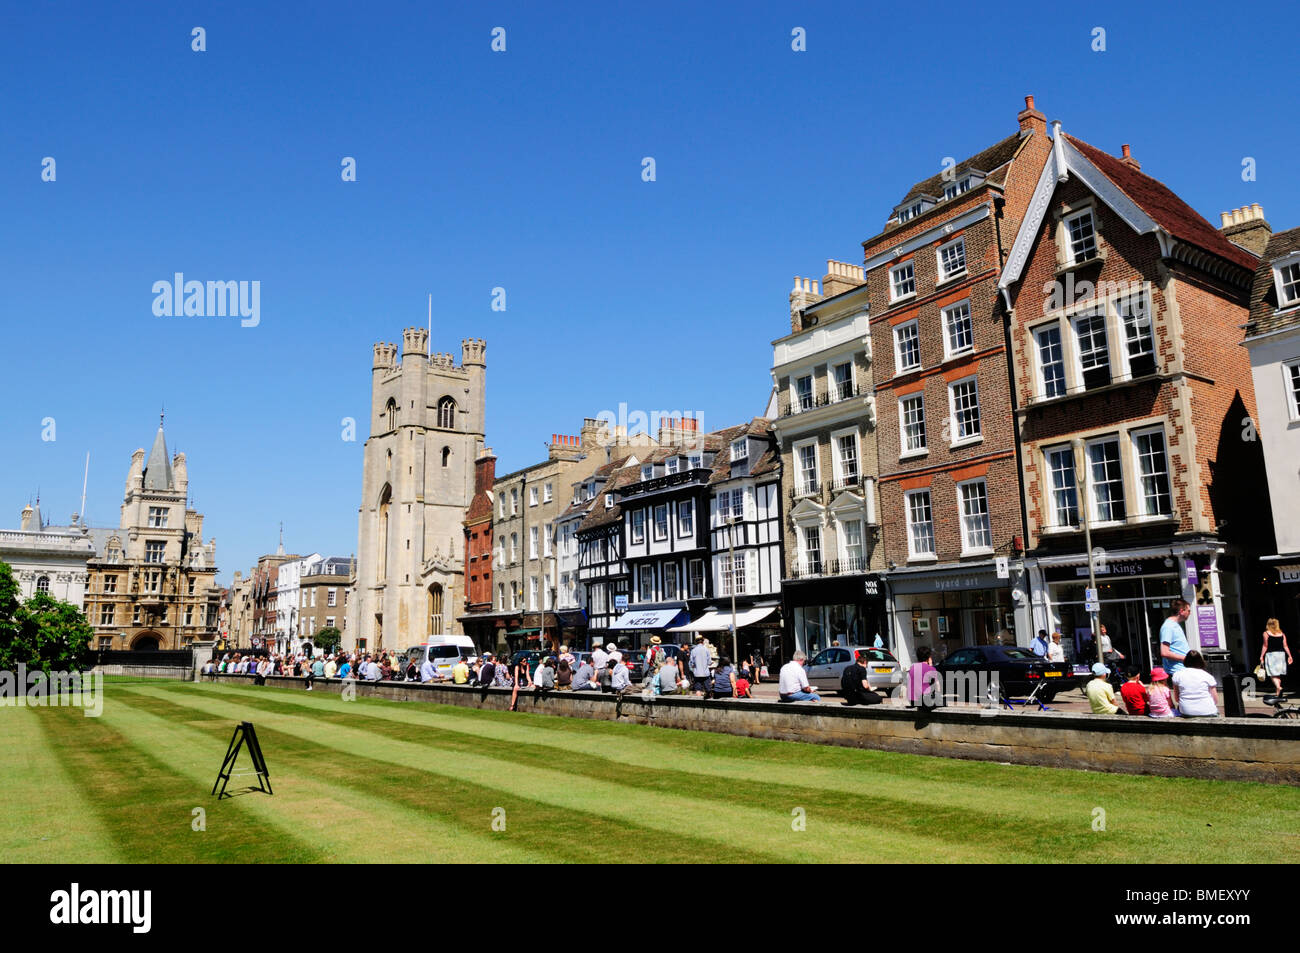 Shops and Tourists along Kings Parade from Kings College, Cambridge, England, UK - Stock Image